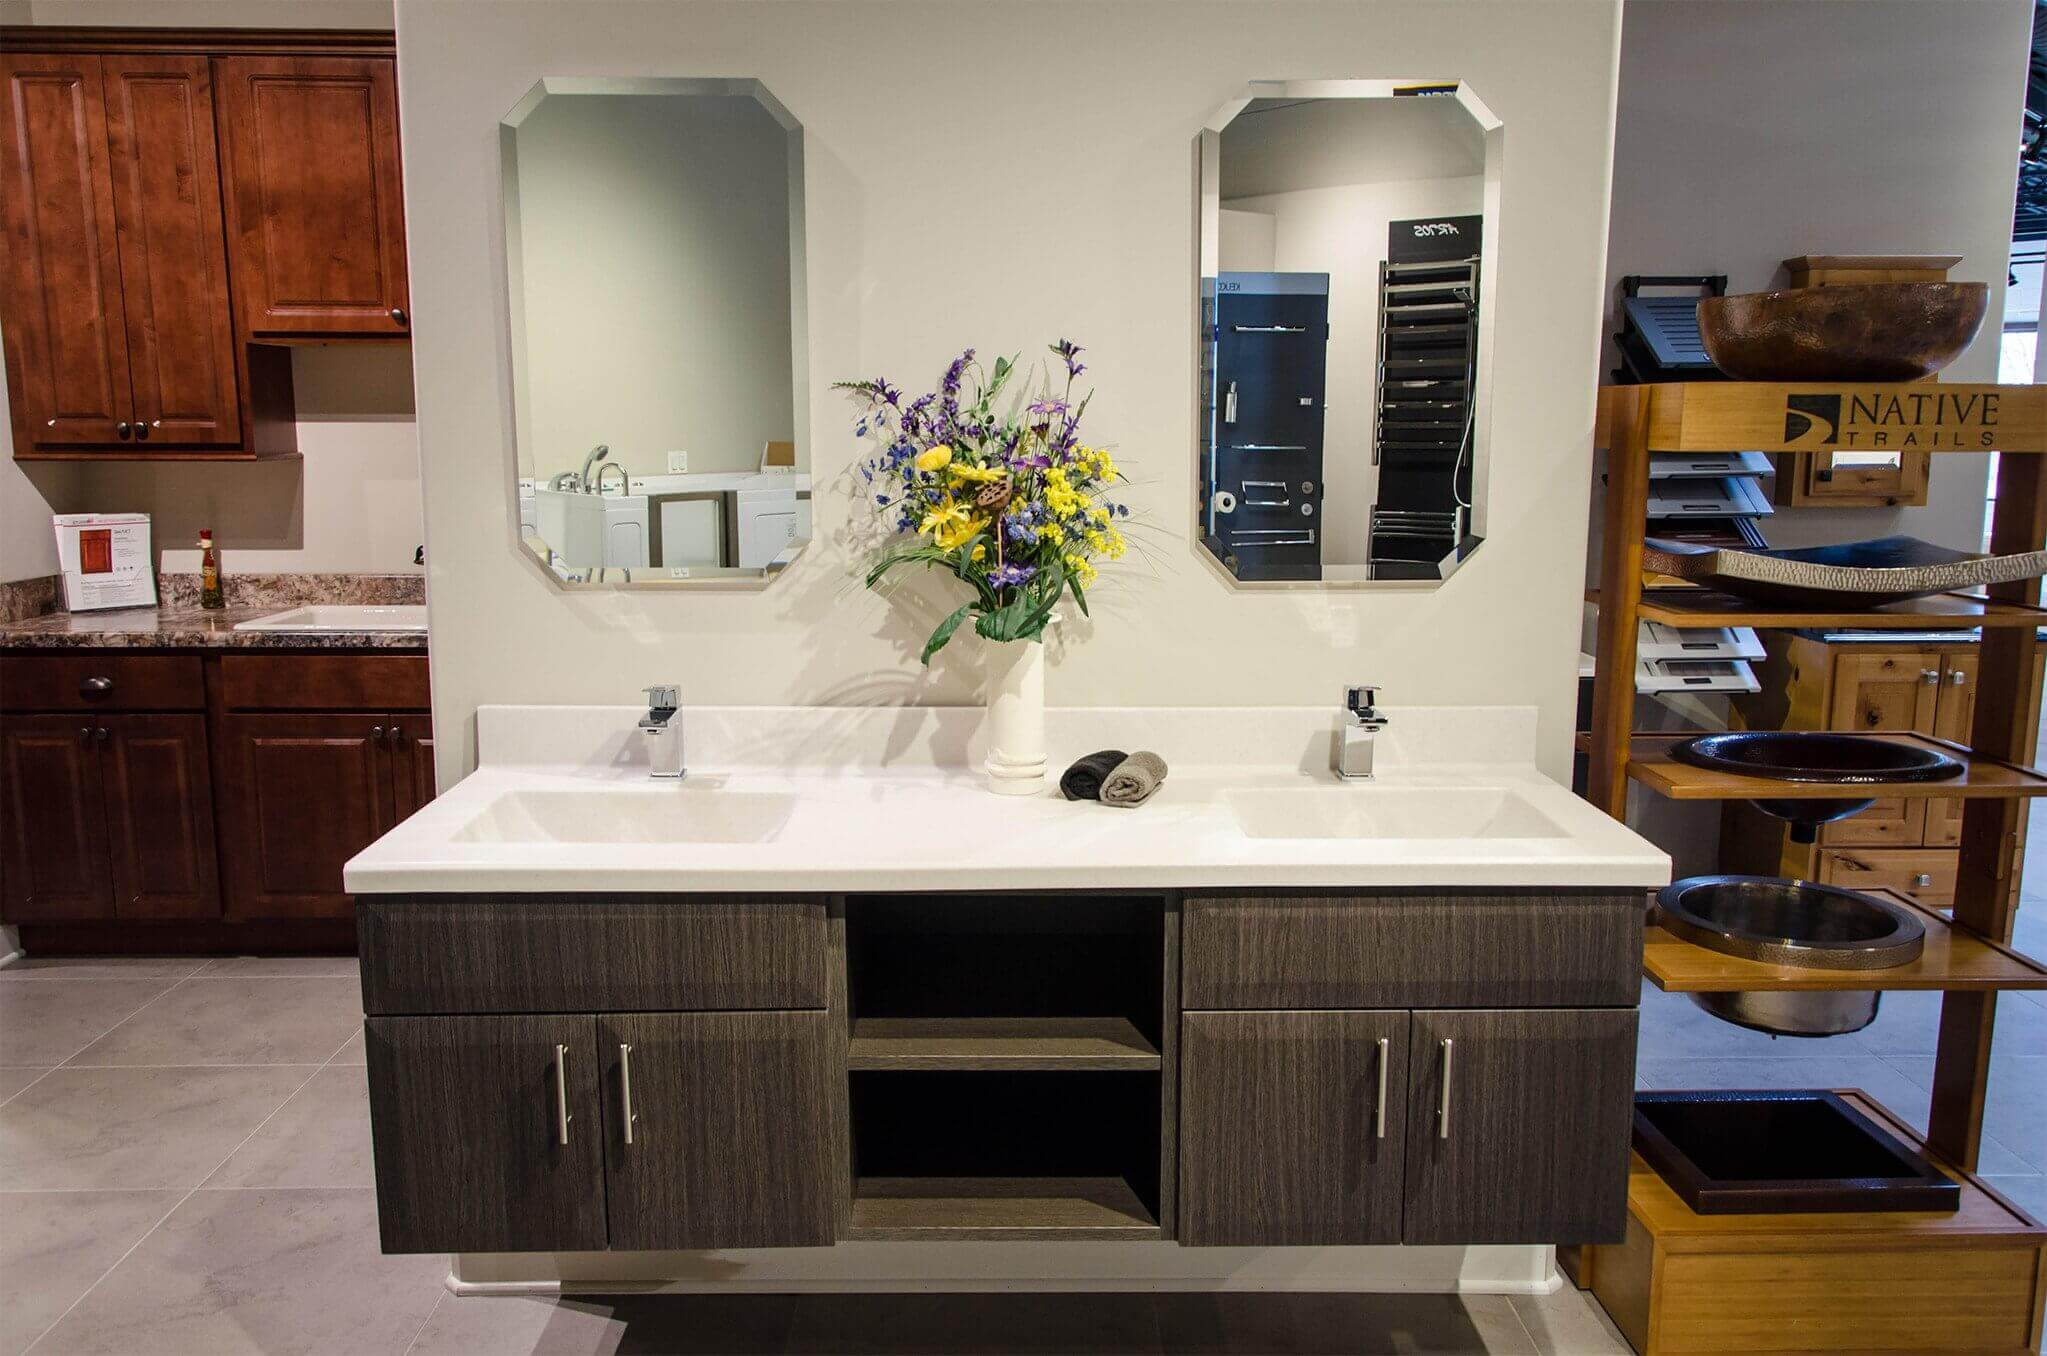 Custom Bathroom Vanities Naperville studio41 home design showroom | locations | schaumburg